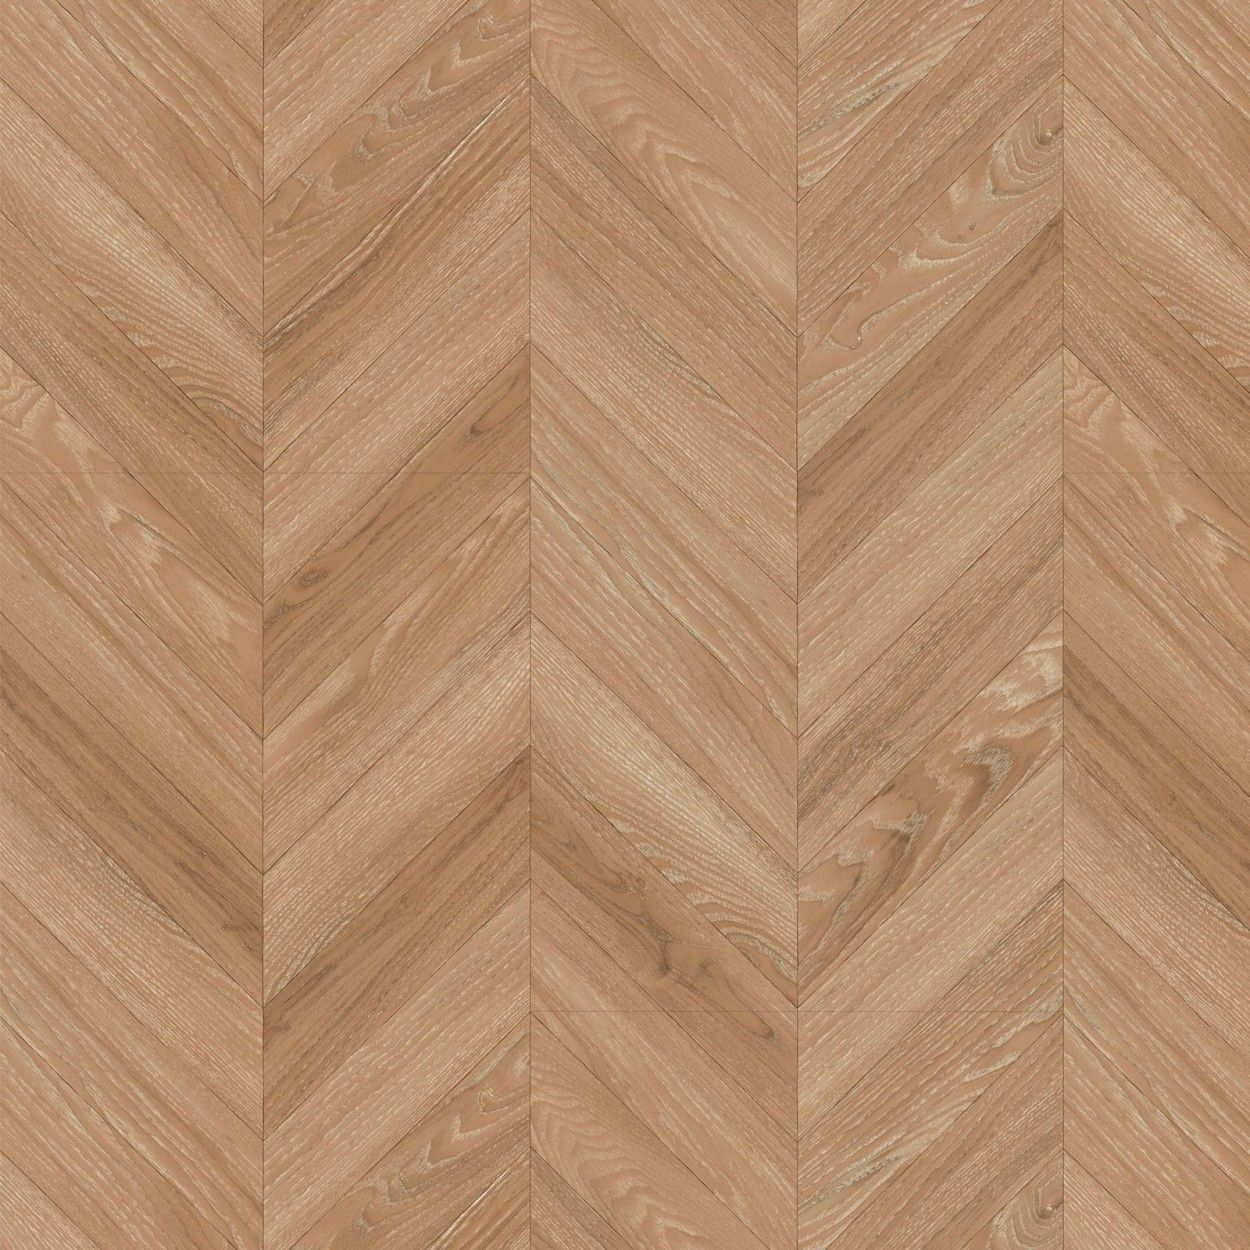 Dalles Clipsables Saint Maclou lame pvc clipsable imitation parquet en chevrons bois